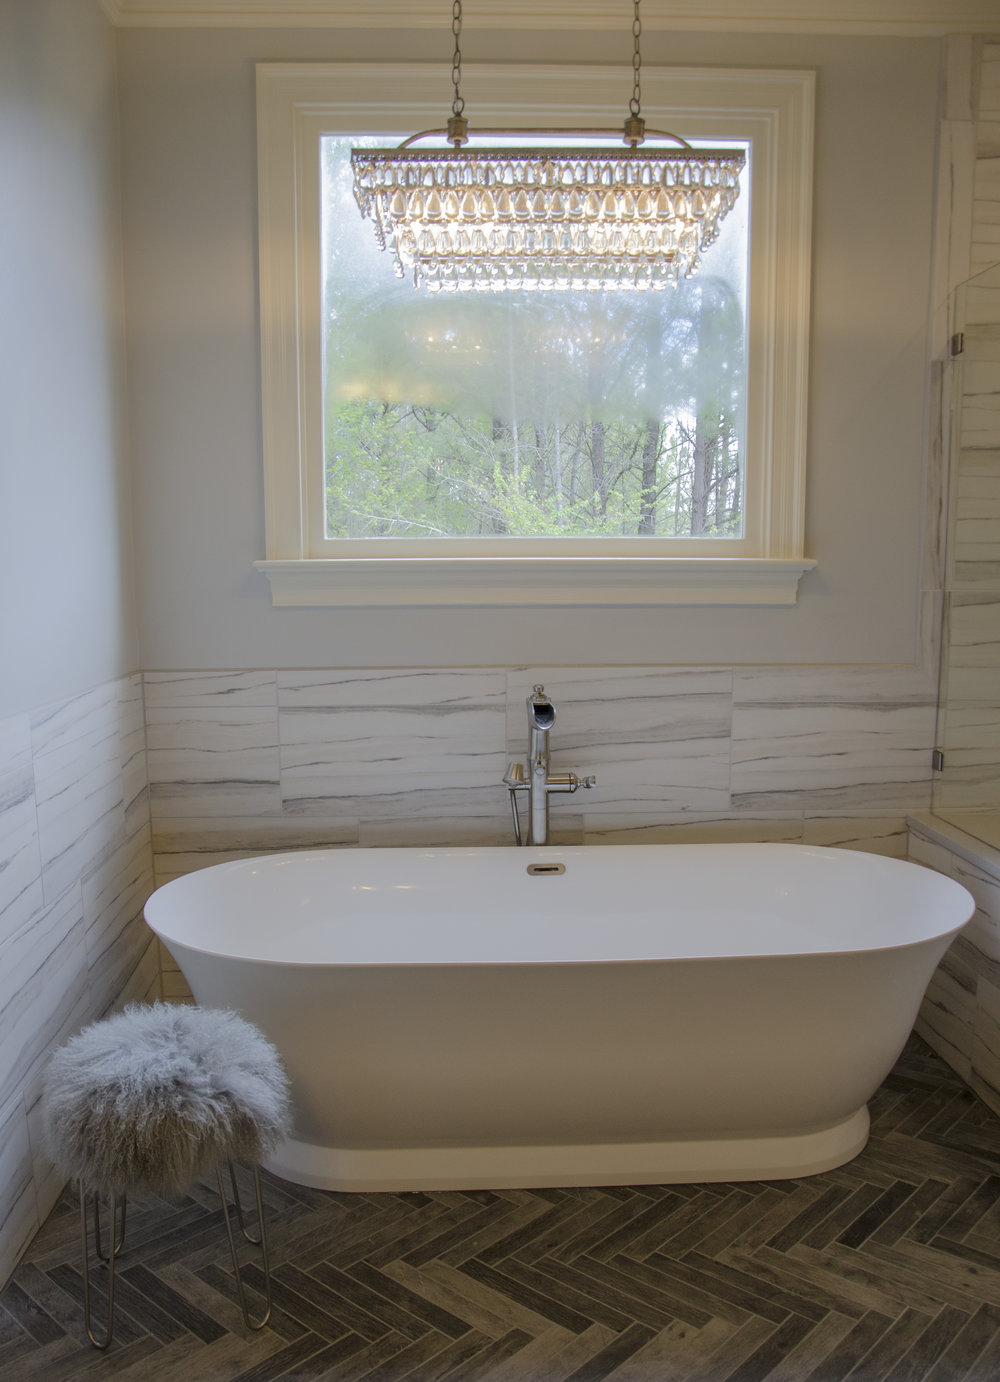 Portrait_Tub_Window.jpg